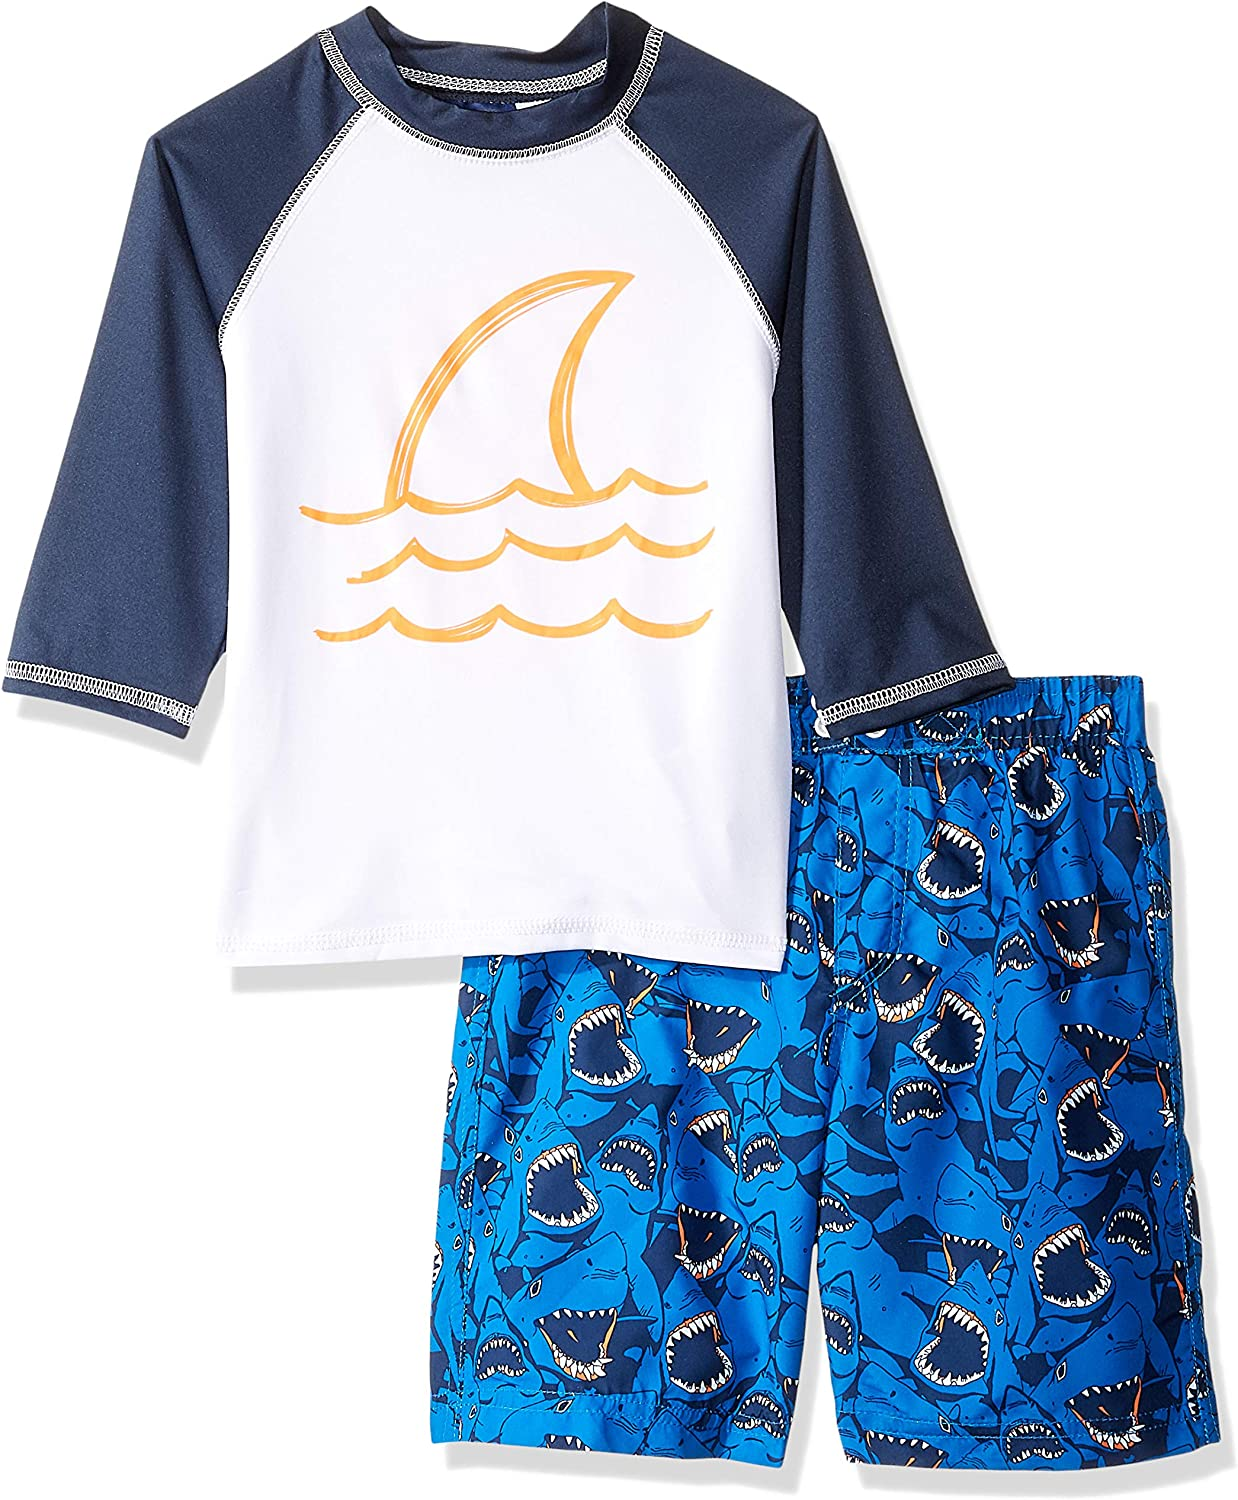 iXtreme Boys Little Printed Rashguard Sets